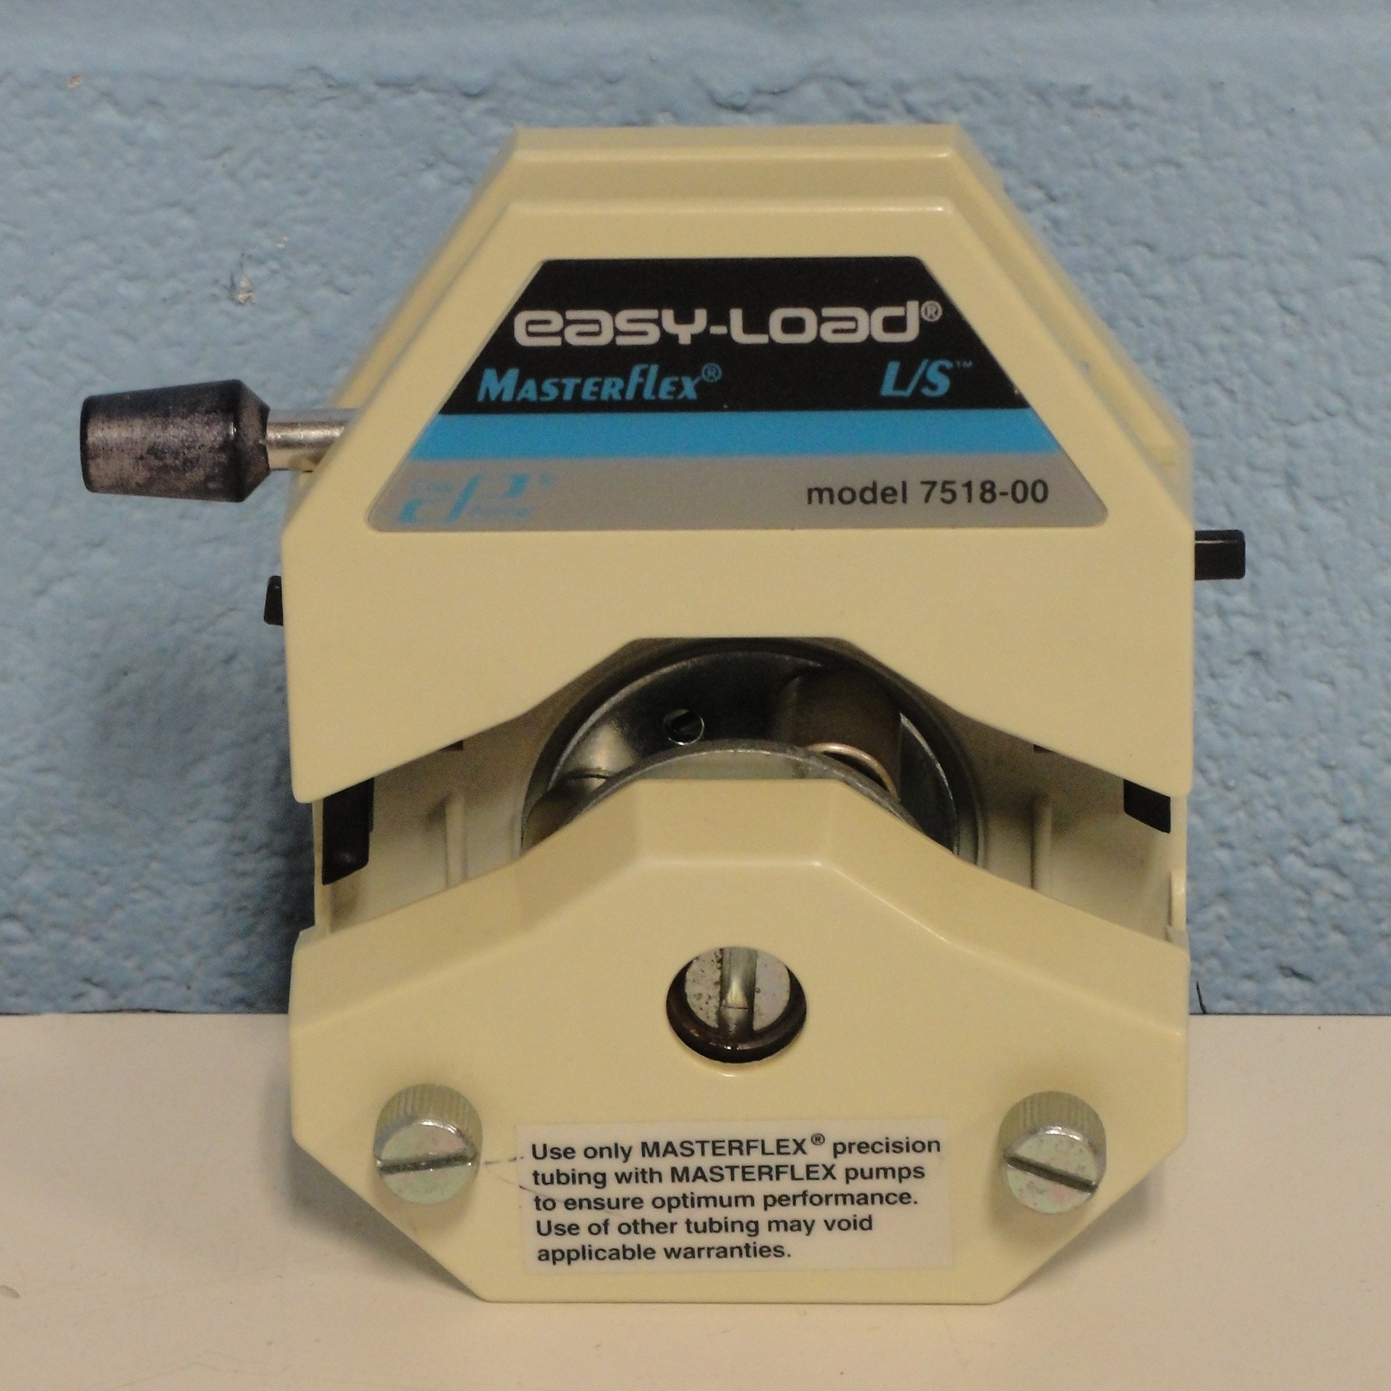 L/S Easy-Load Pump Head Model 7518-00 Name